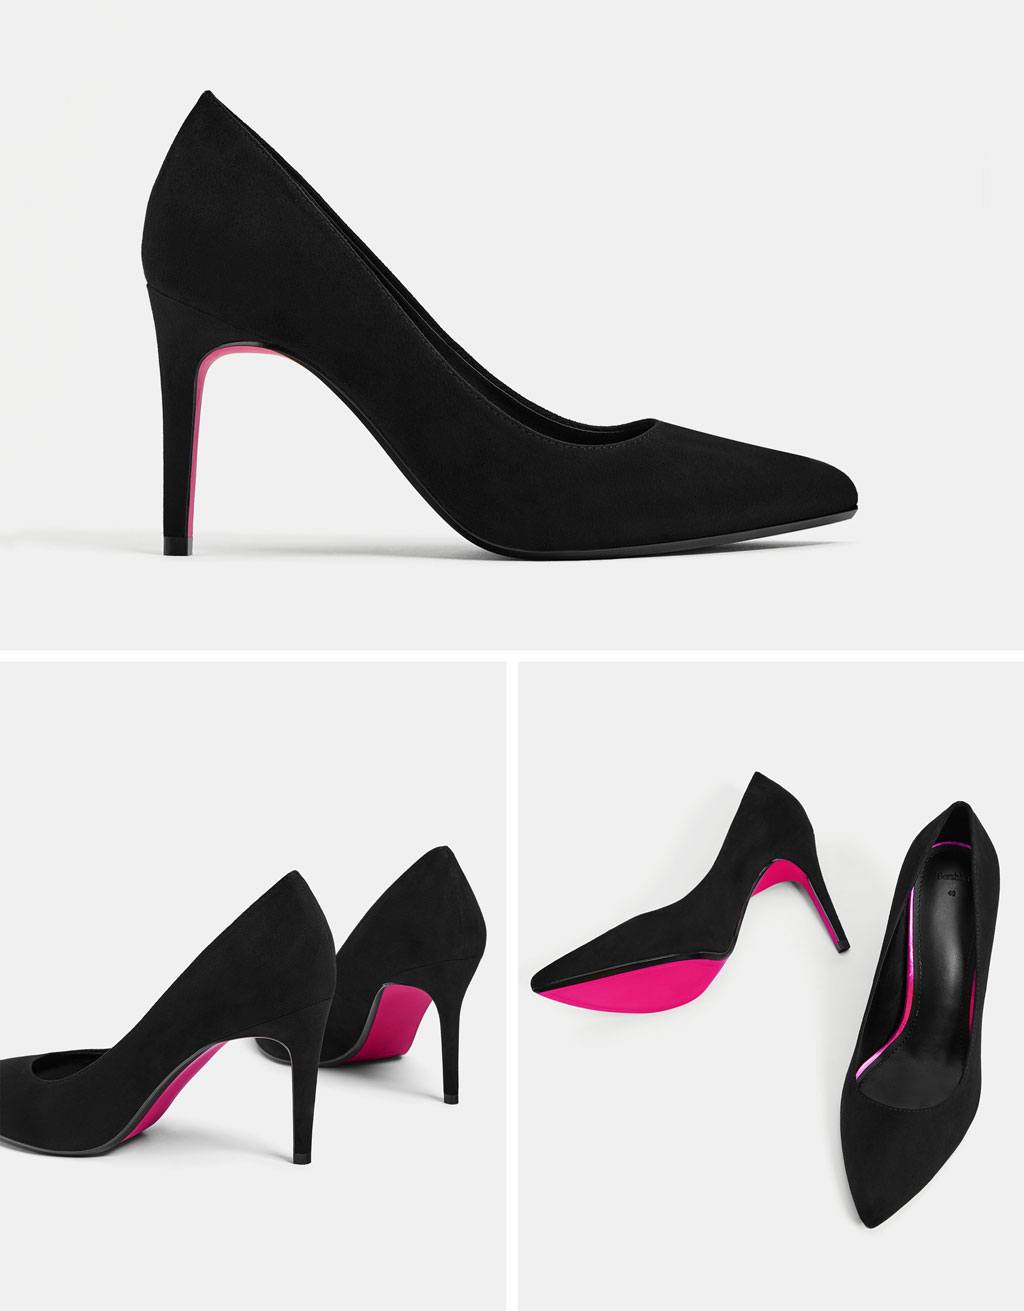 Stiletto heel shoes with contrasting soles